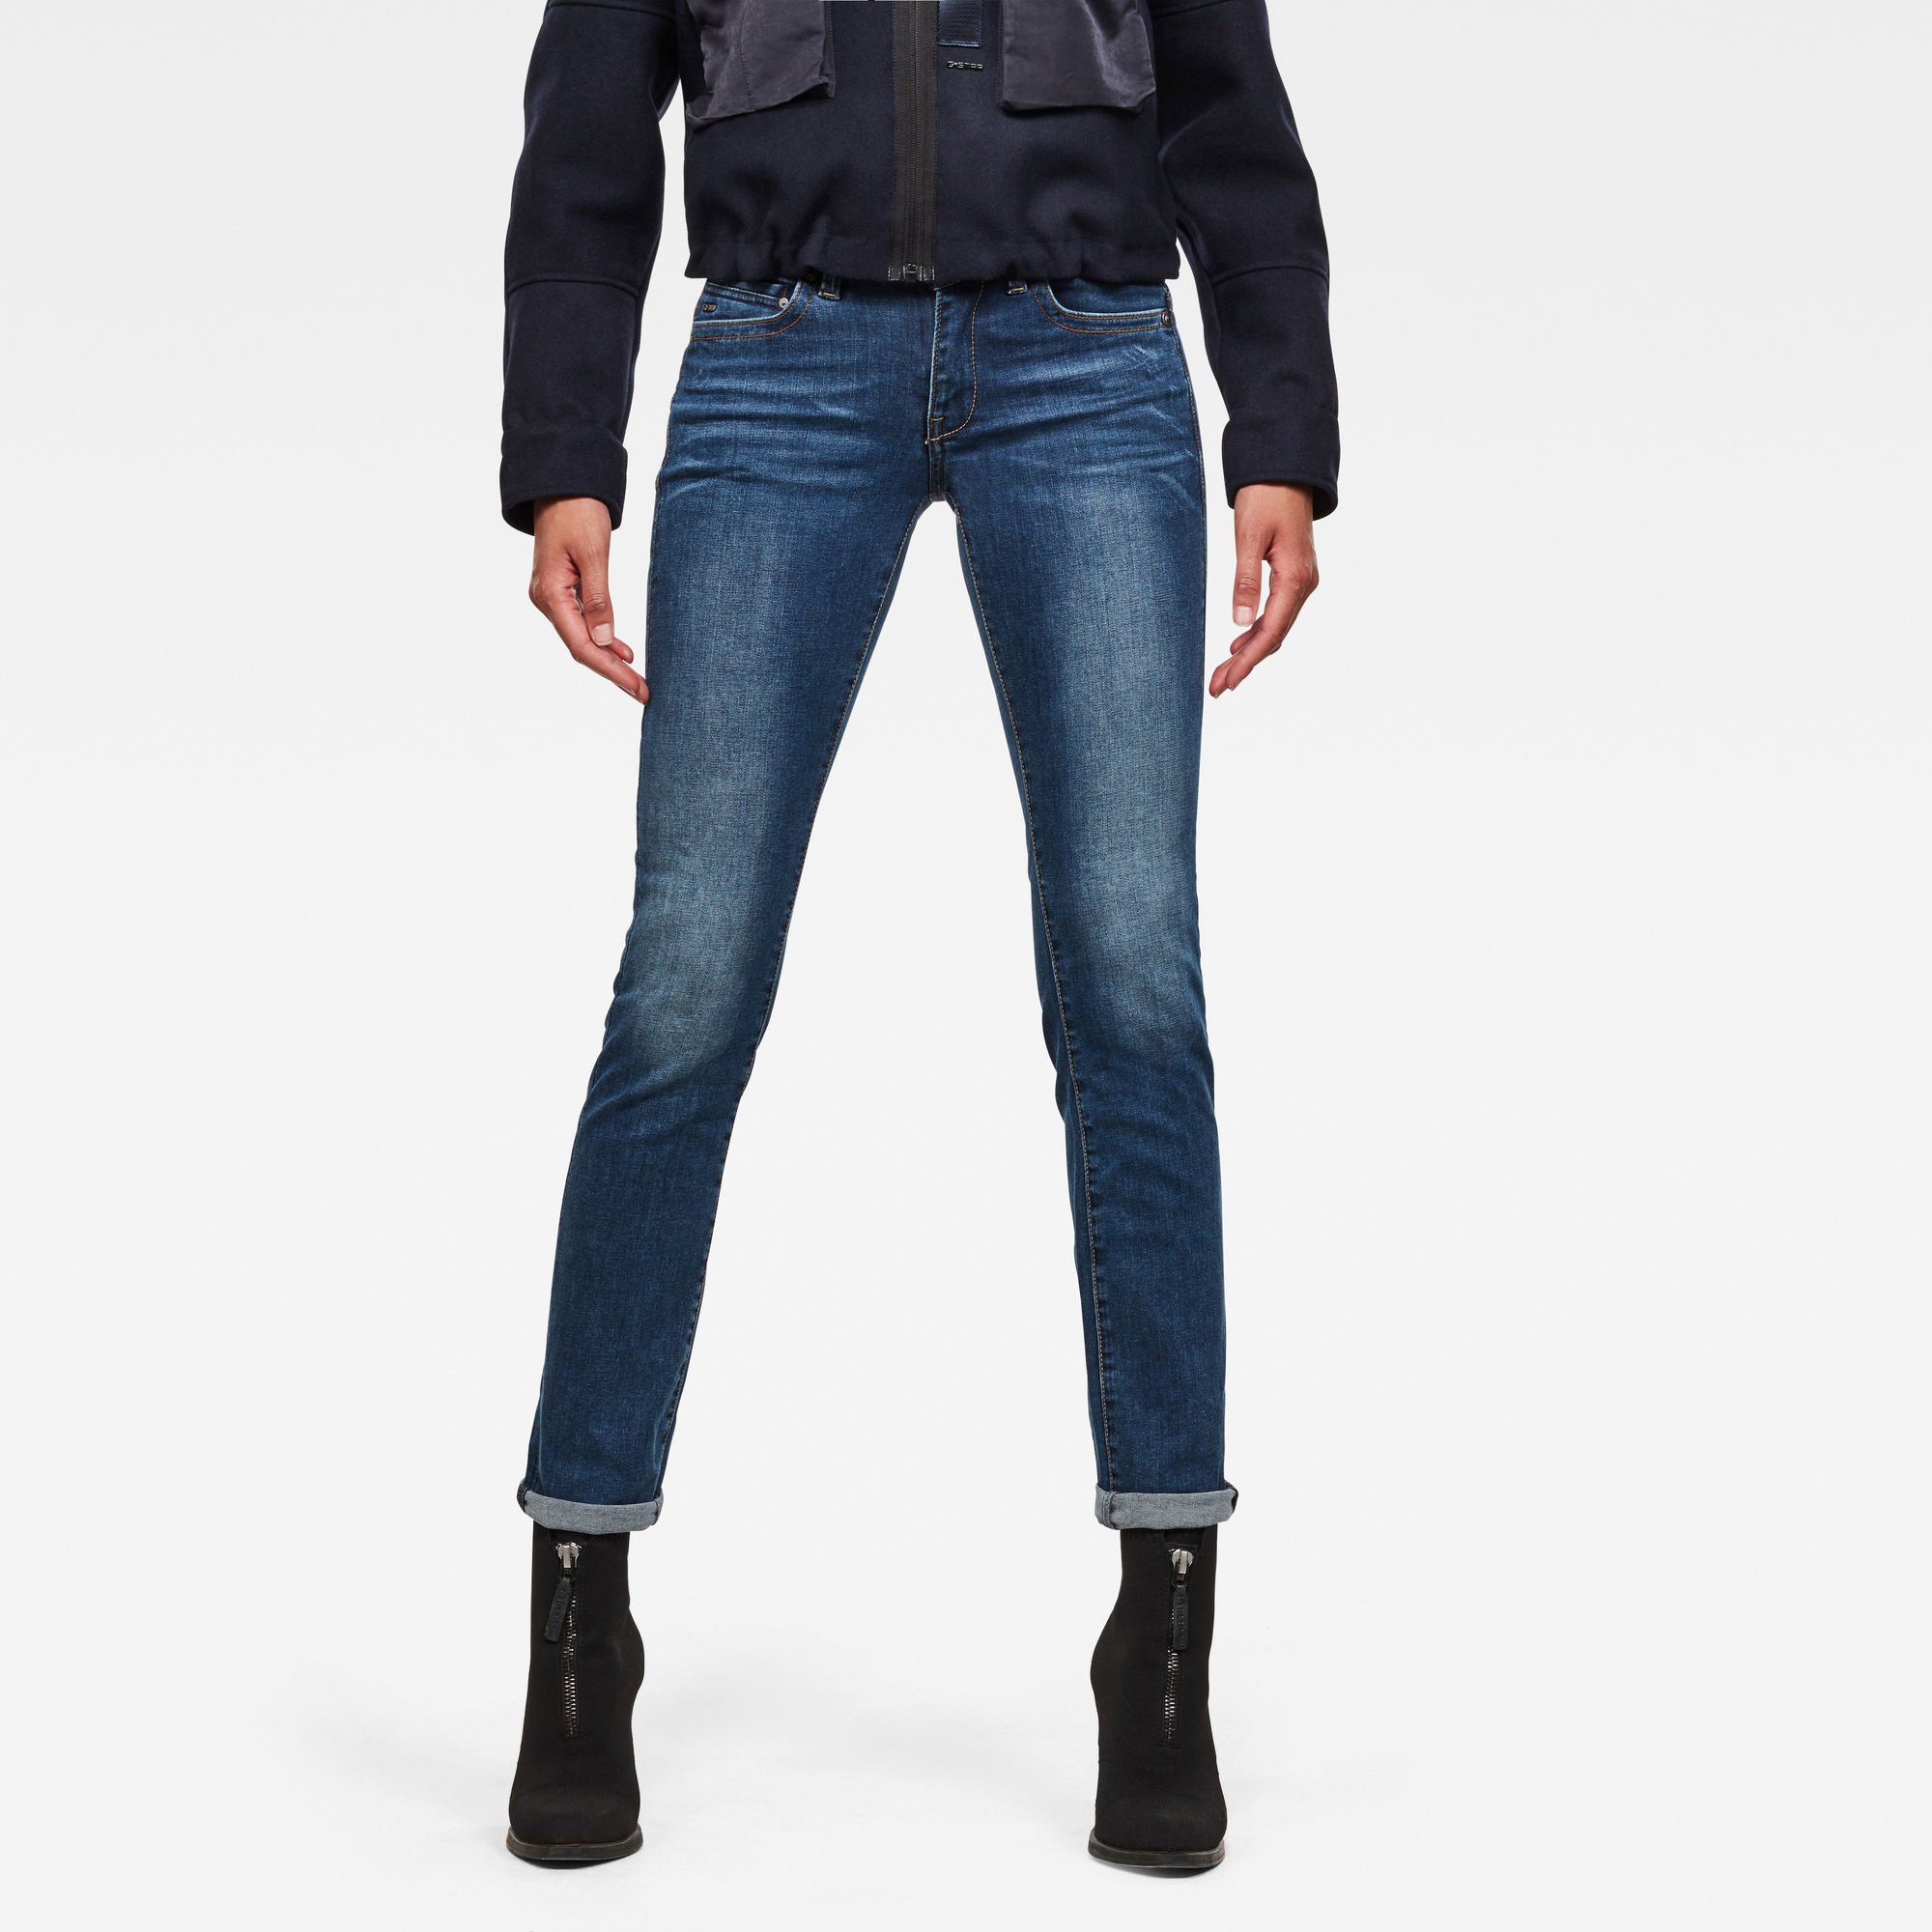 Details zu G Star RAW Neu Damen Midge Saddle Straight Jeans